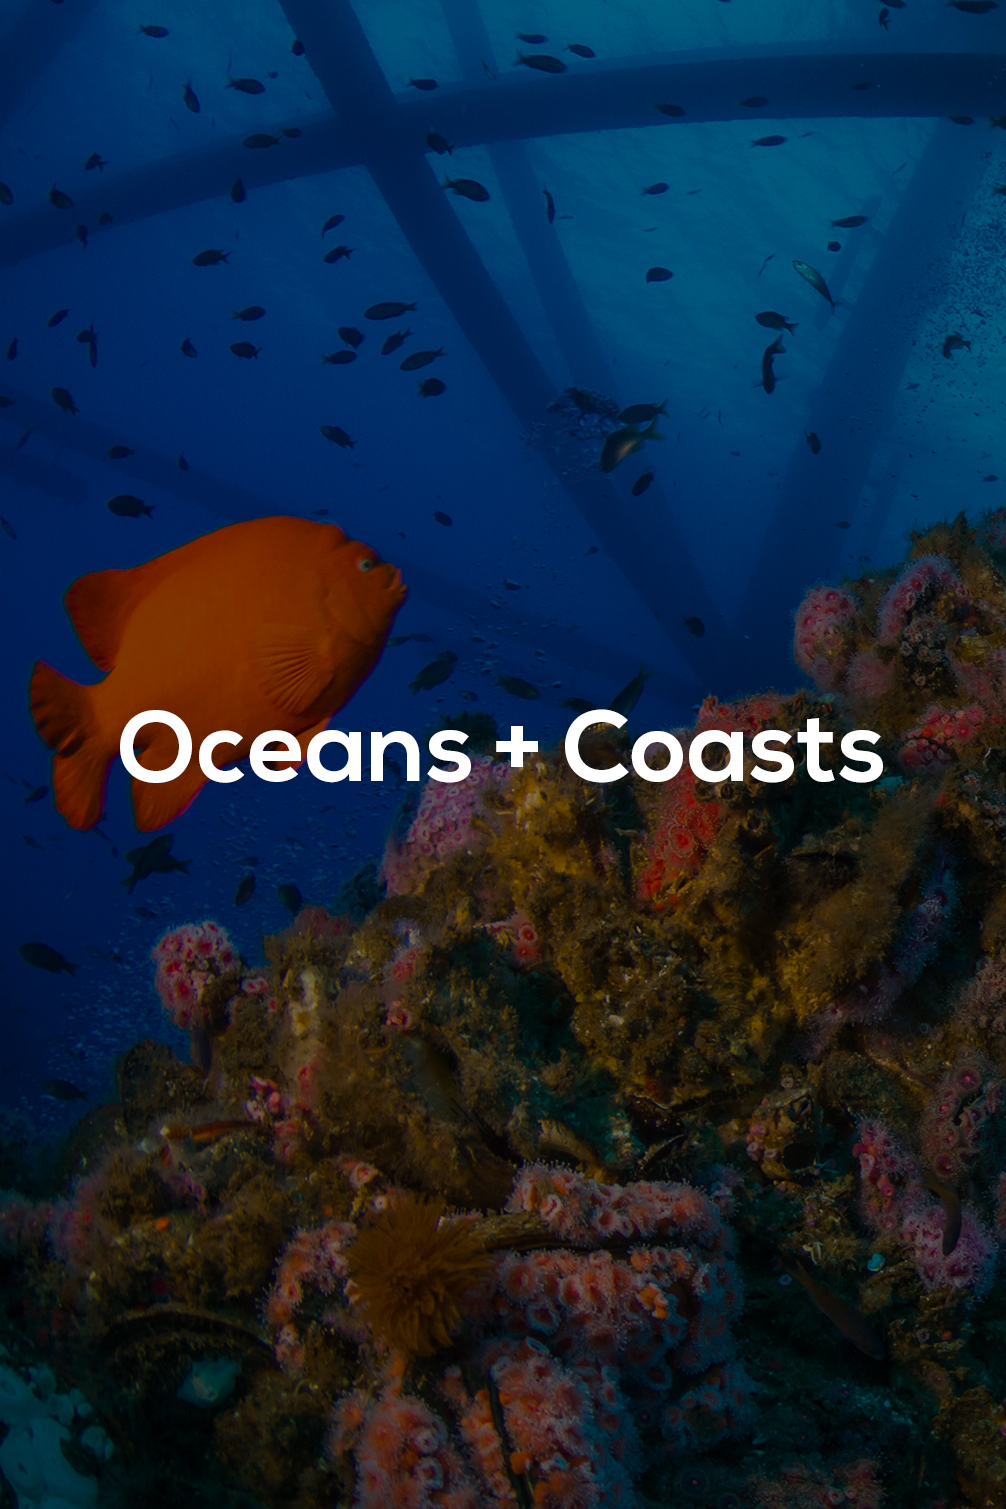 Oceans & Coasts - title